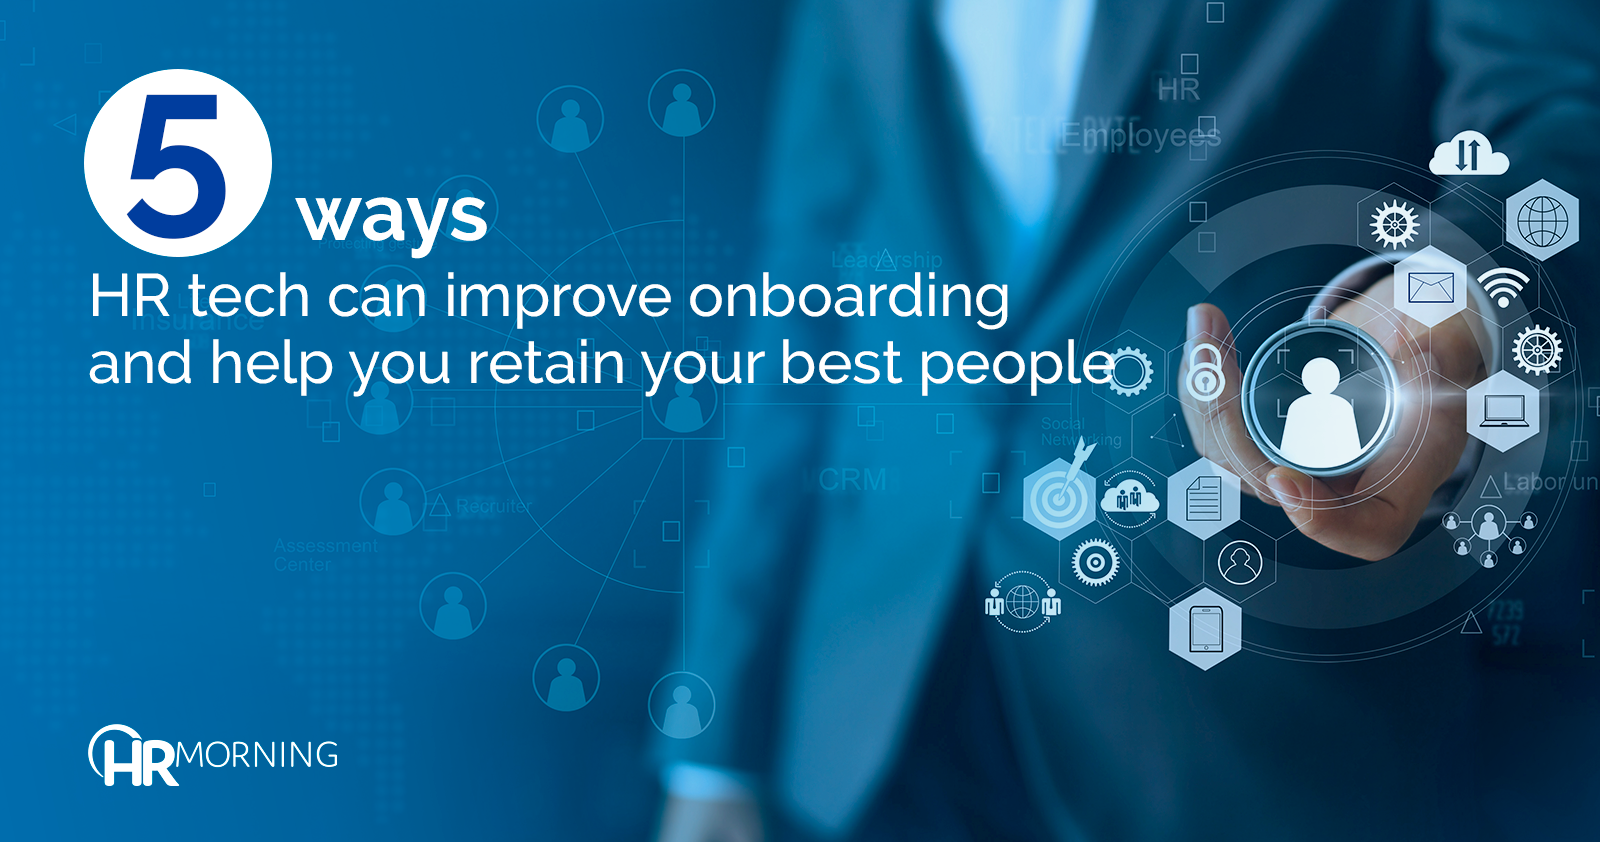 HR onboarding you retain best people